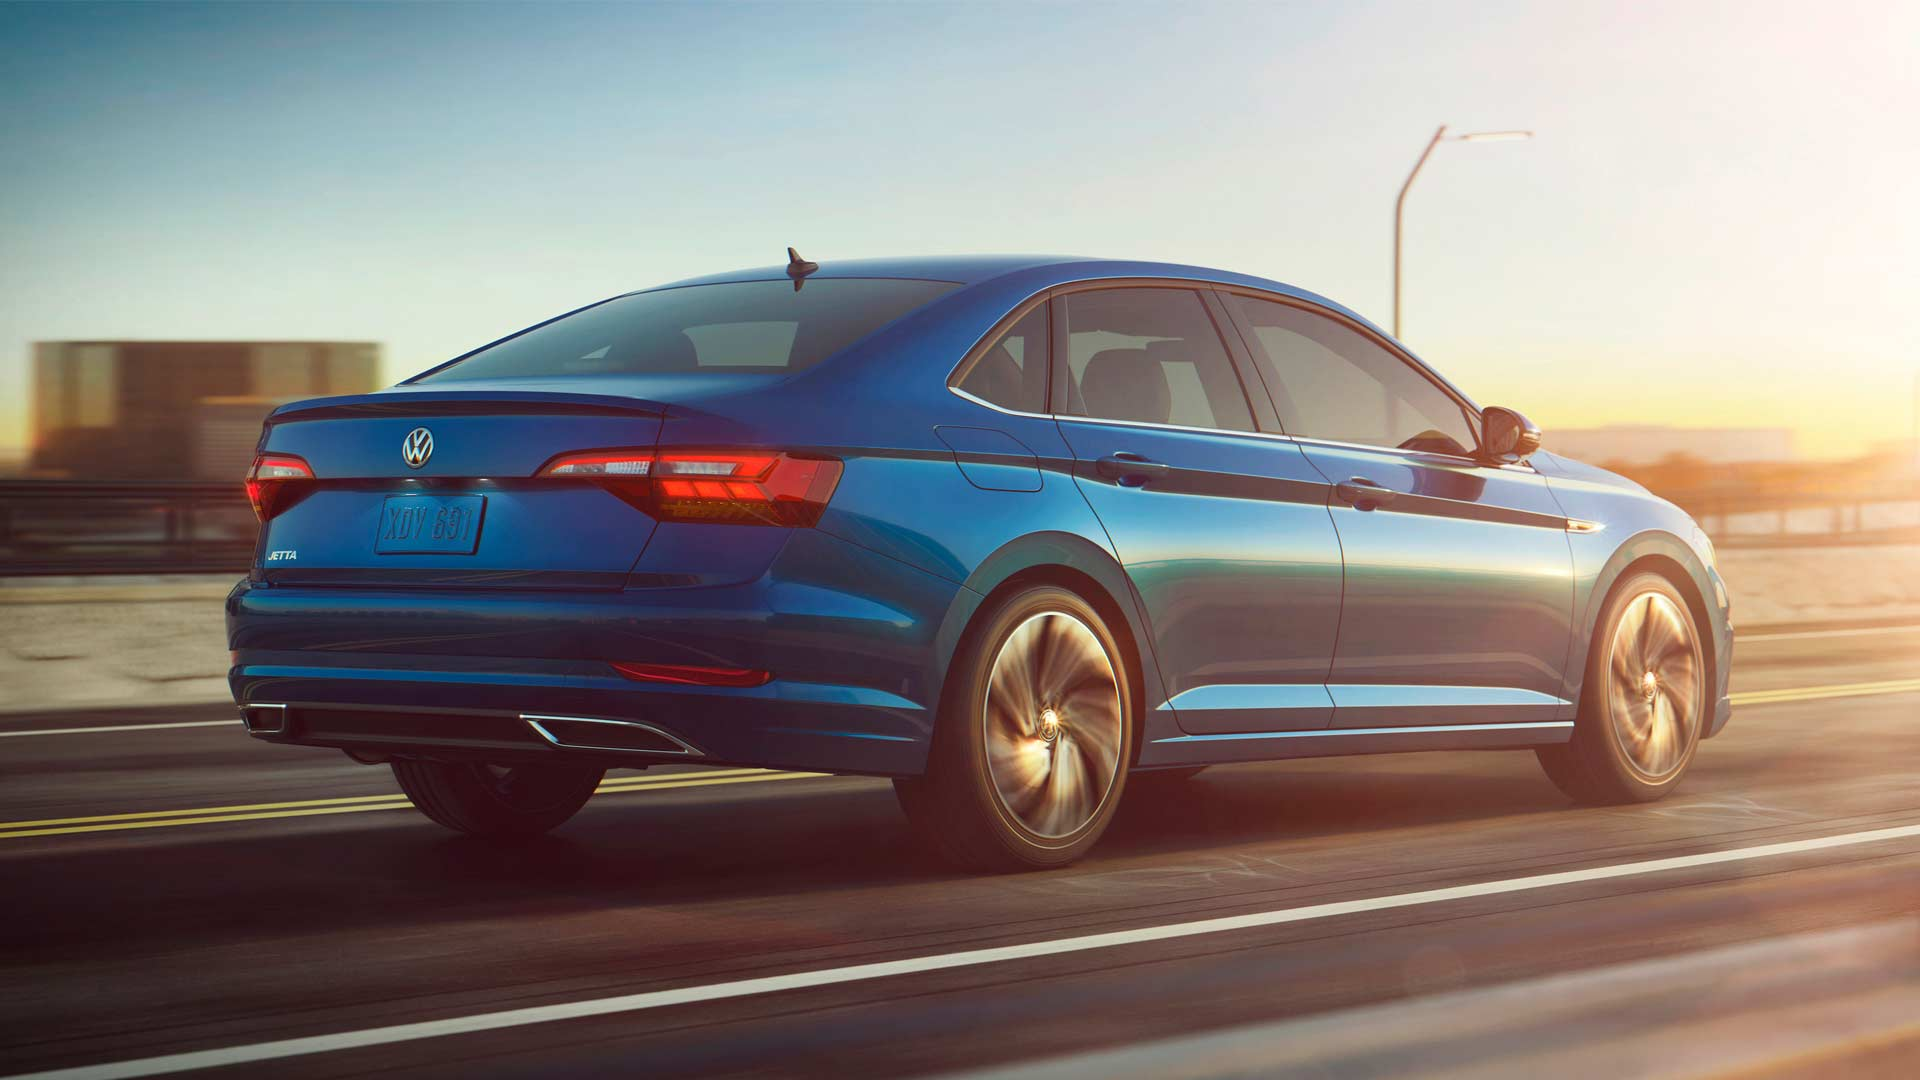 2019-7th-Generation-Volkswagen-Jetta_5